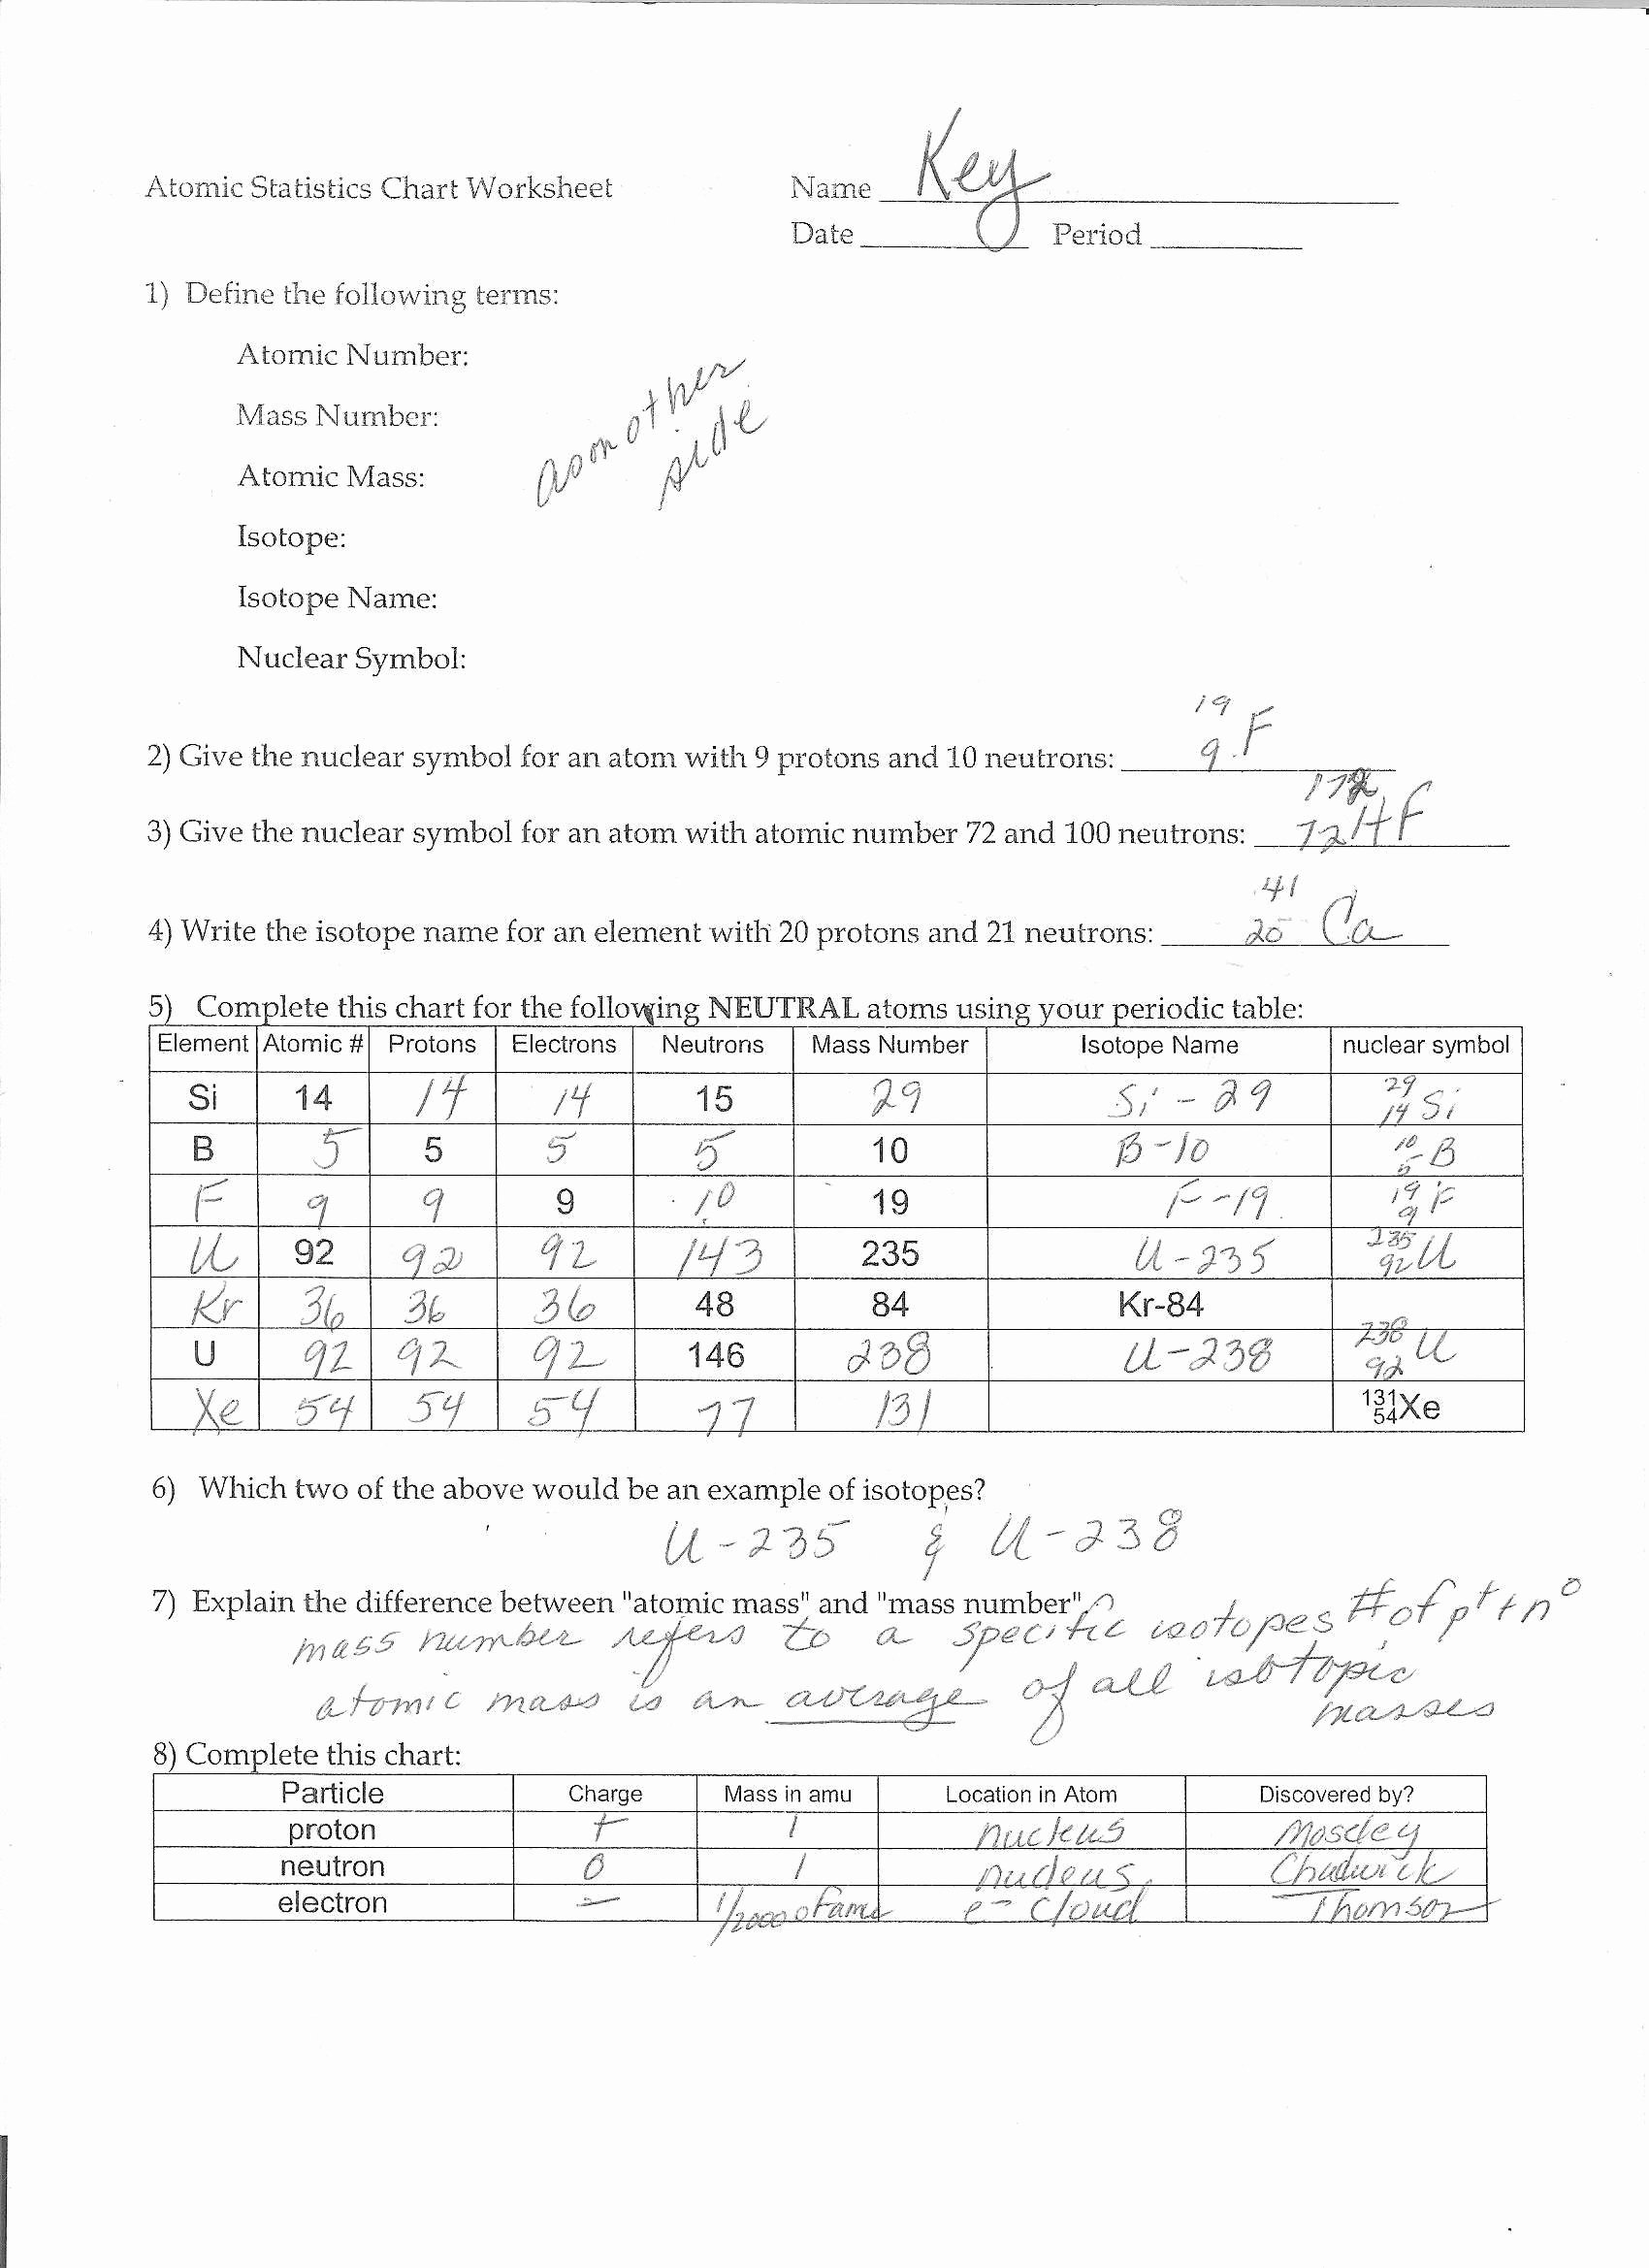 Human Population Growth Worksheet Awesome Population Growth Worksheet Answers Worksheet Idea Template